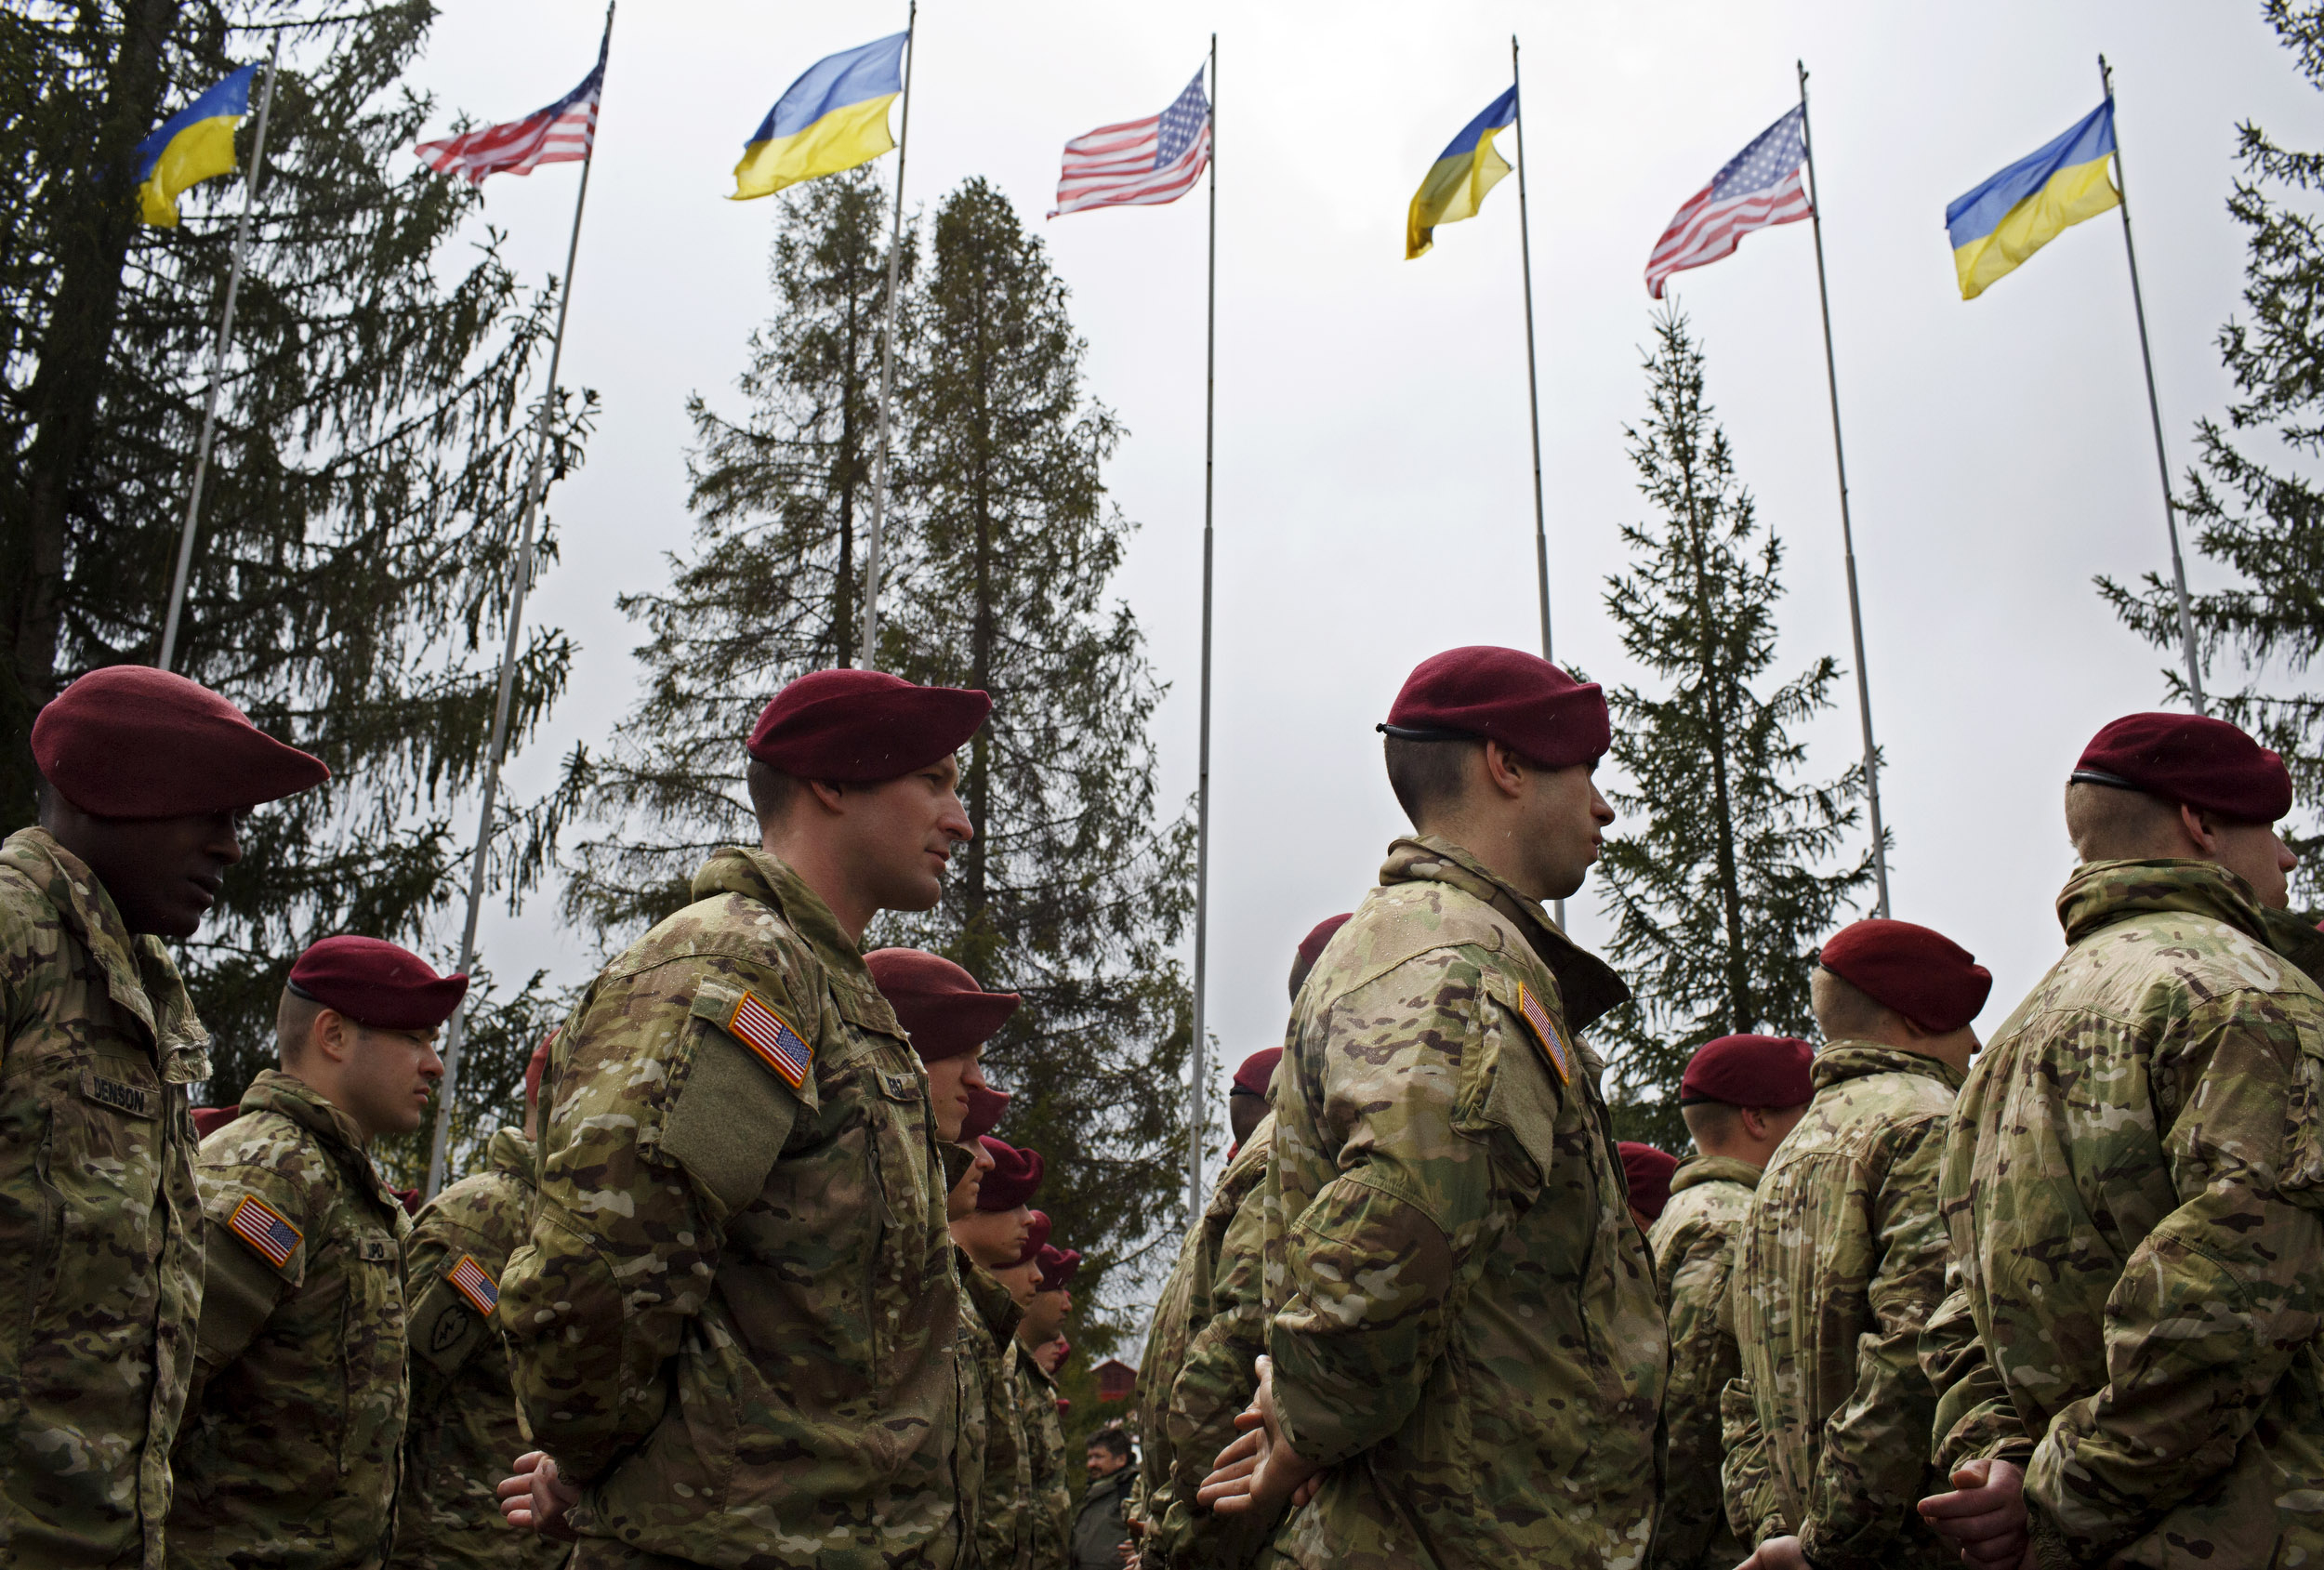 Members of the American 173rd Airborne unit stand at attention during the opening ceremony for Operation Fearless Guardian on April 20, 2015 at the International Peacekeeping and Security Center near Yavoriv, Ukraine.